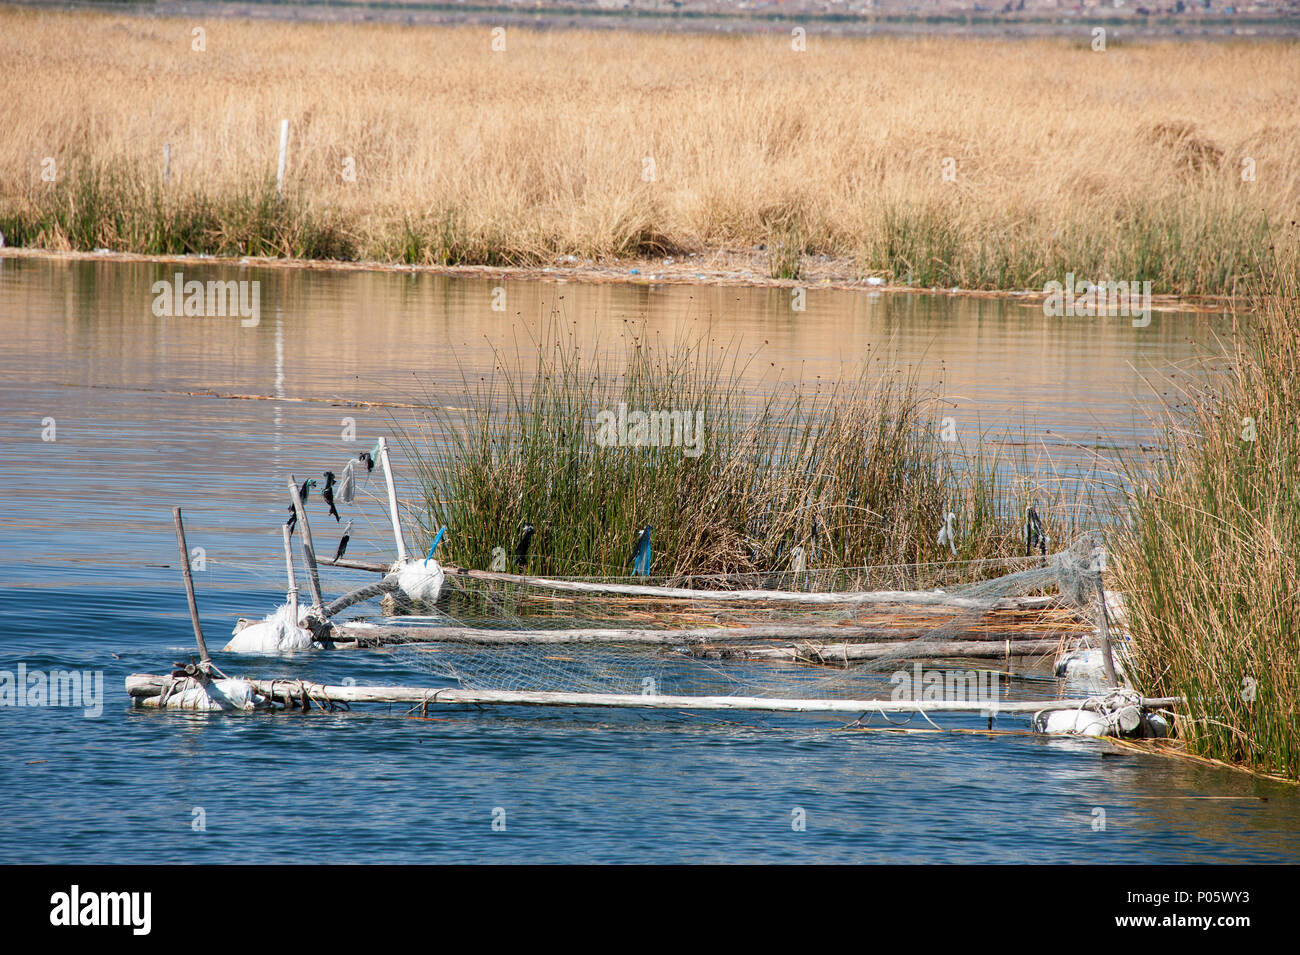 A hand made device for catching fish on the  Uros floating Islands in Puno, Lake Titikaka Peru - Stock Image